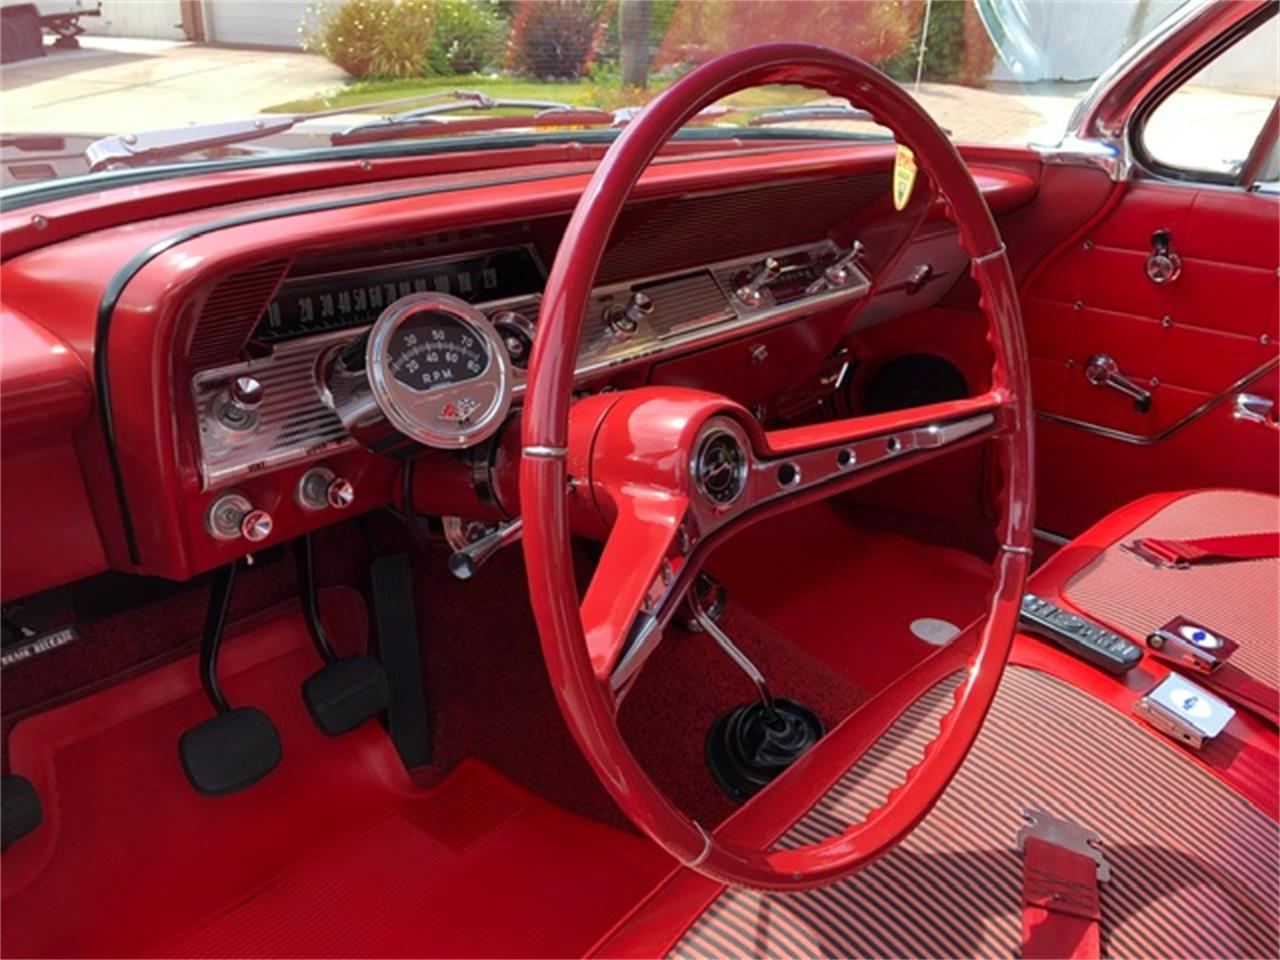 Large Picture of '62 Impala located in Orange California - $59,500.00 Offered by Classic Car Marketing, Inc. - Q71N